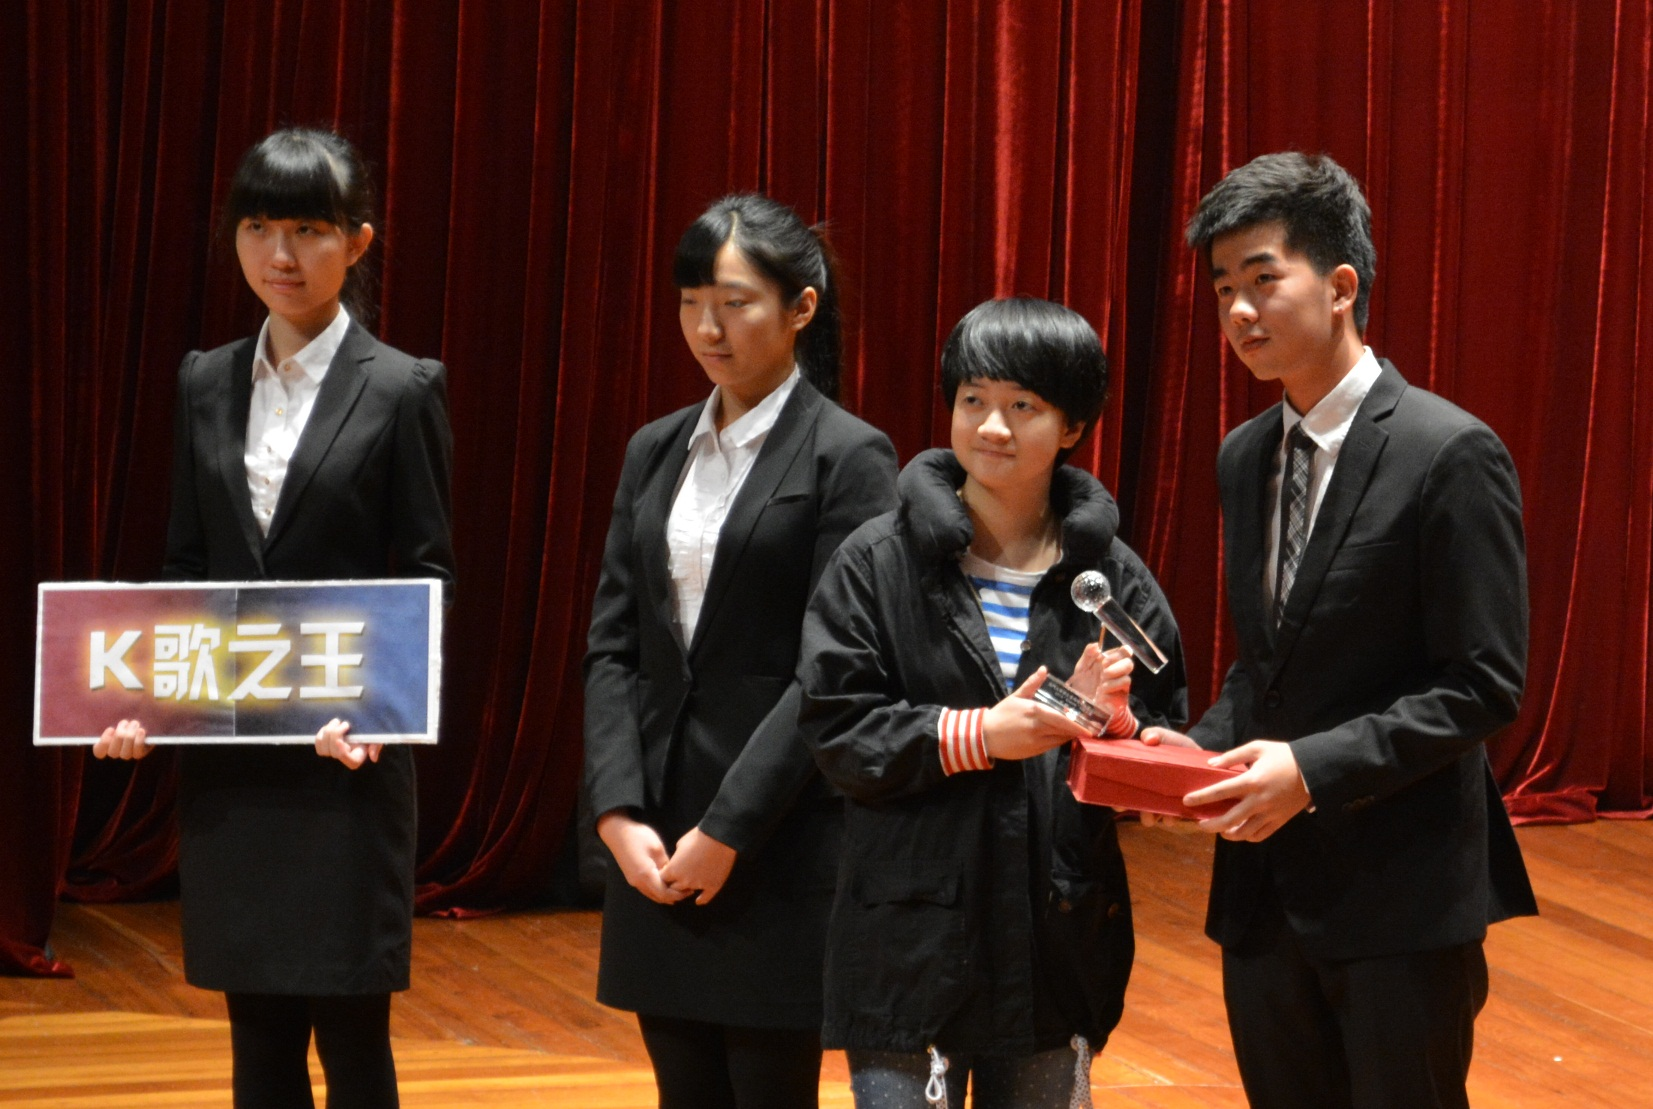 Guo Rui (3 from left) is the biggest winner, receiving three prizes.